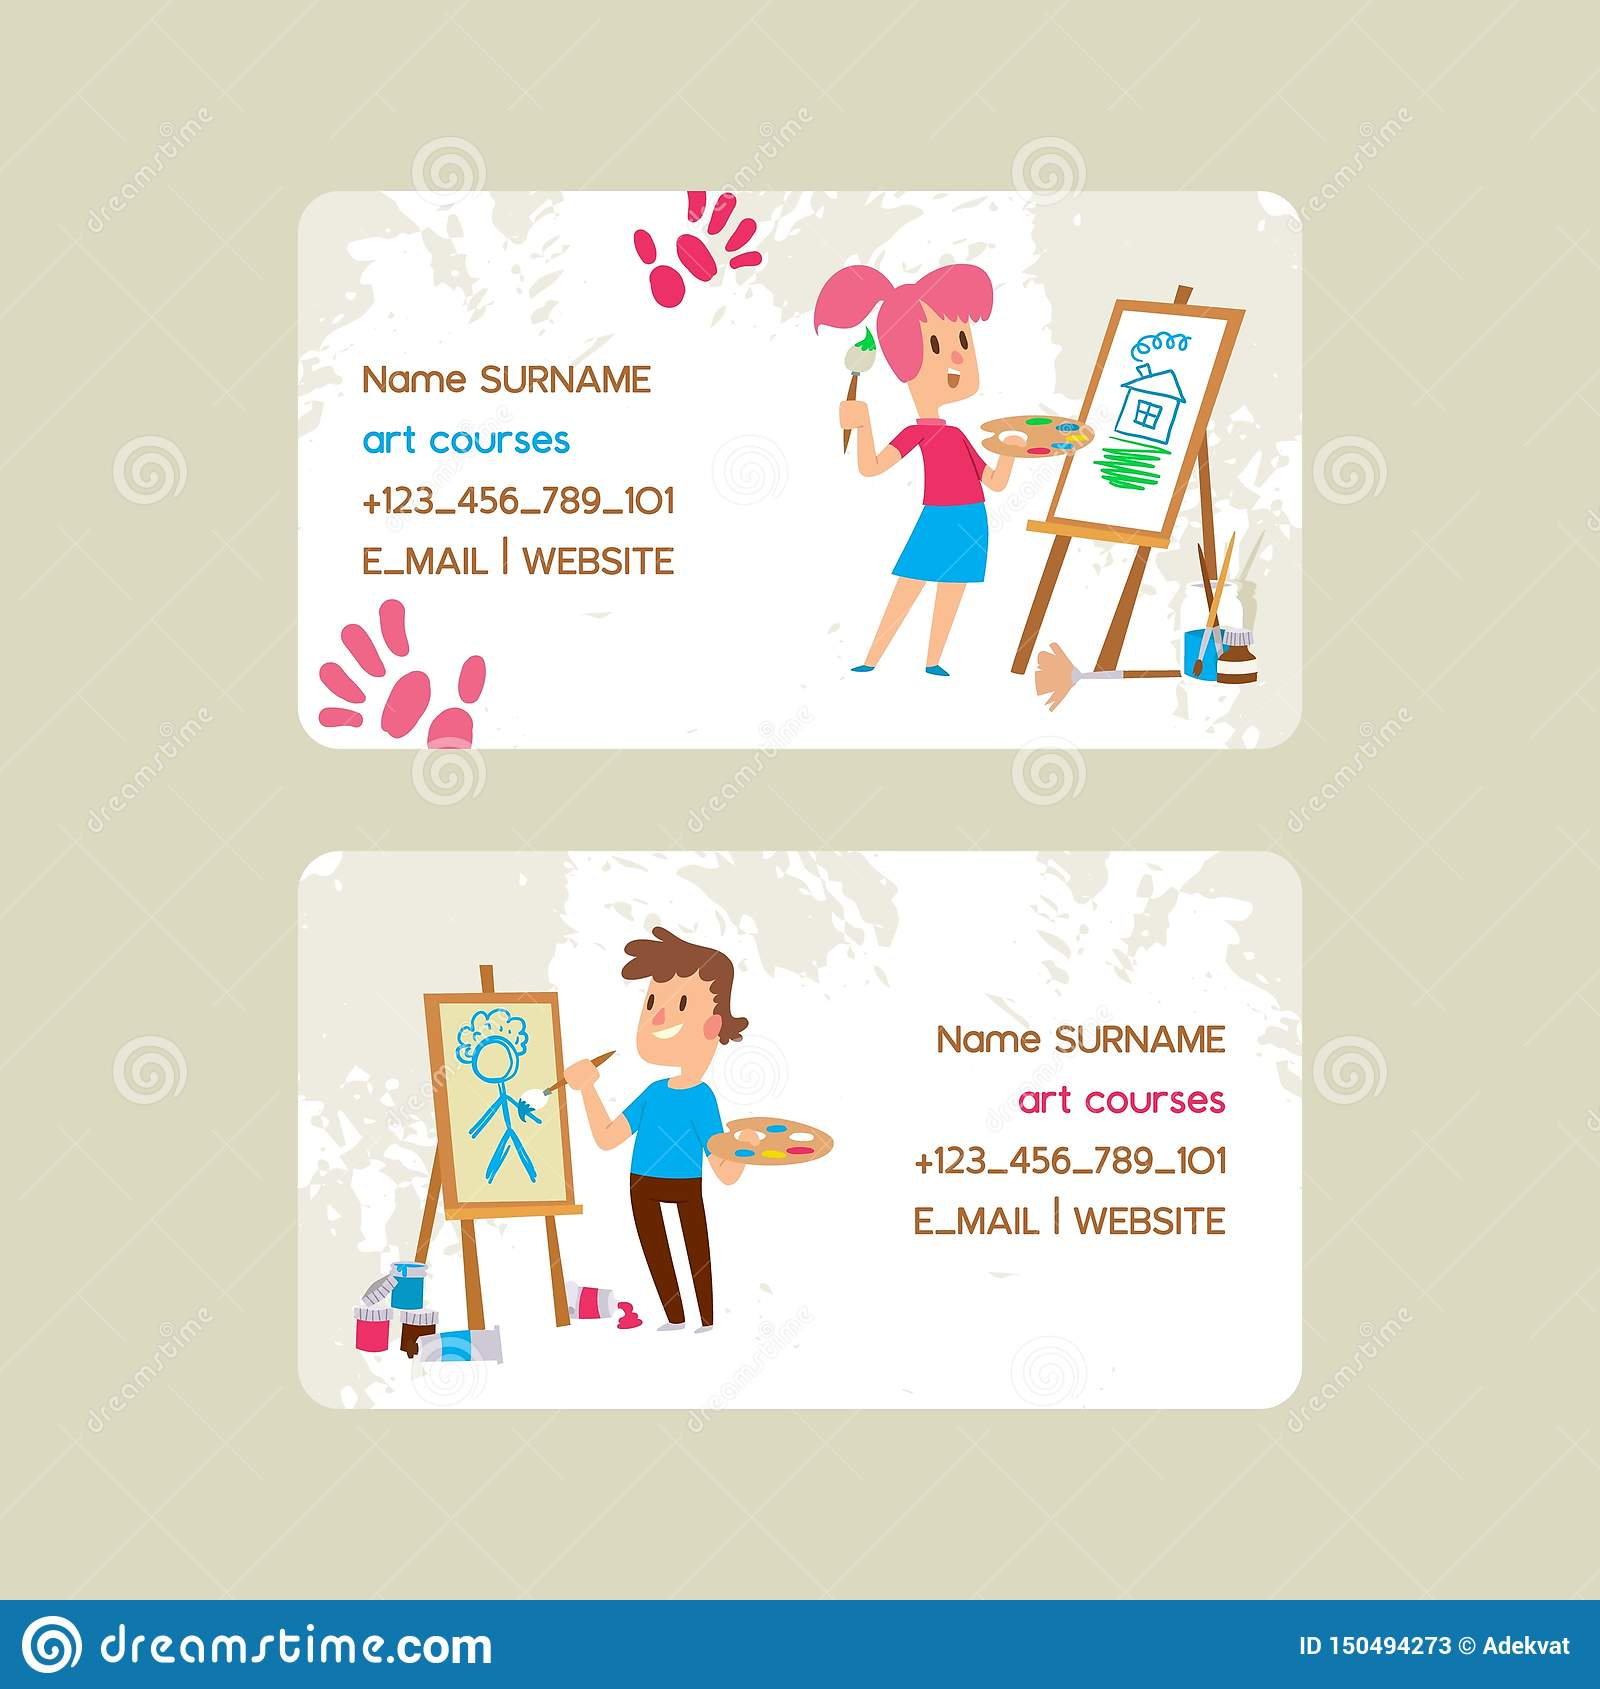 Art courses school set of business cards vector illustration. Girl and boy drawing, painting, sketching on easel